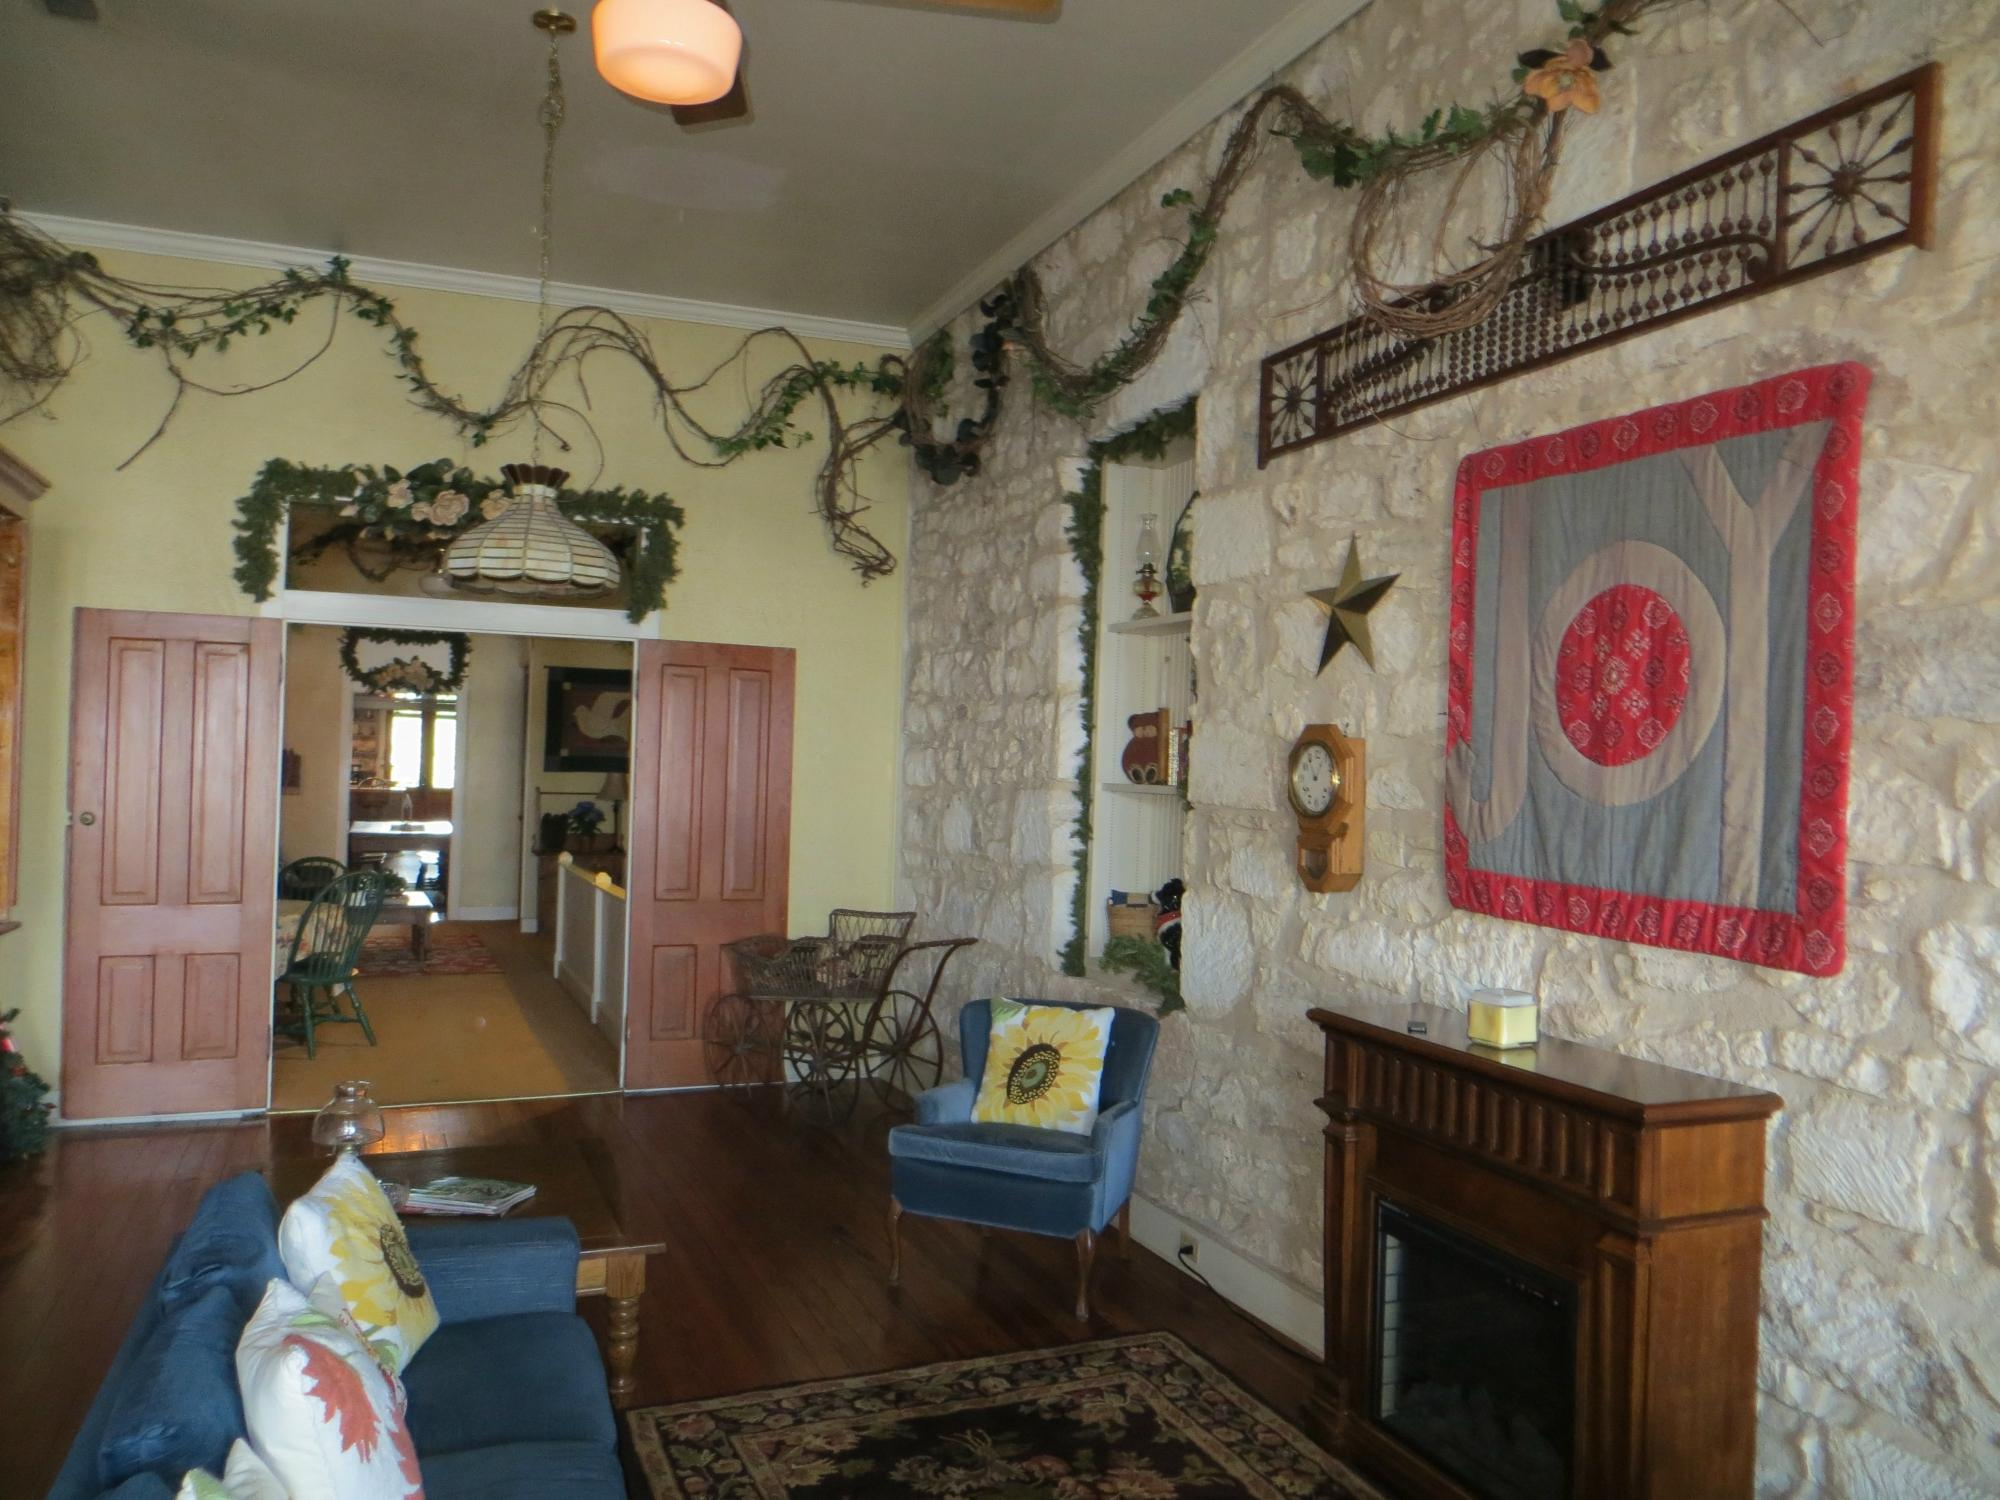 Fredericksburg Bakery Bed and Breakfast